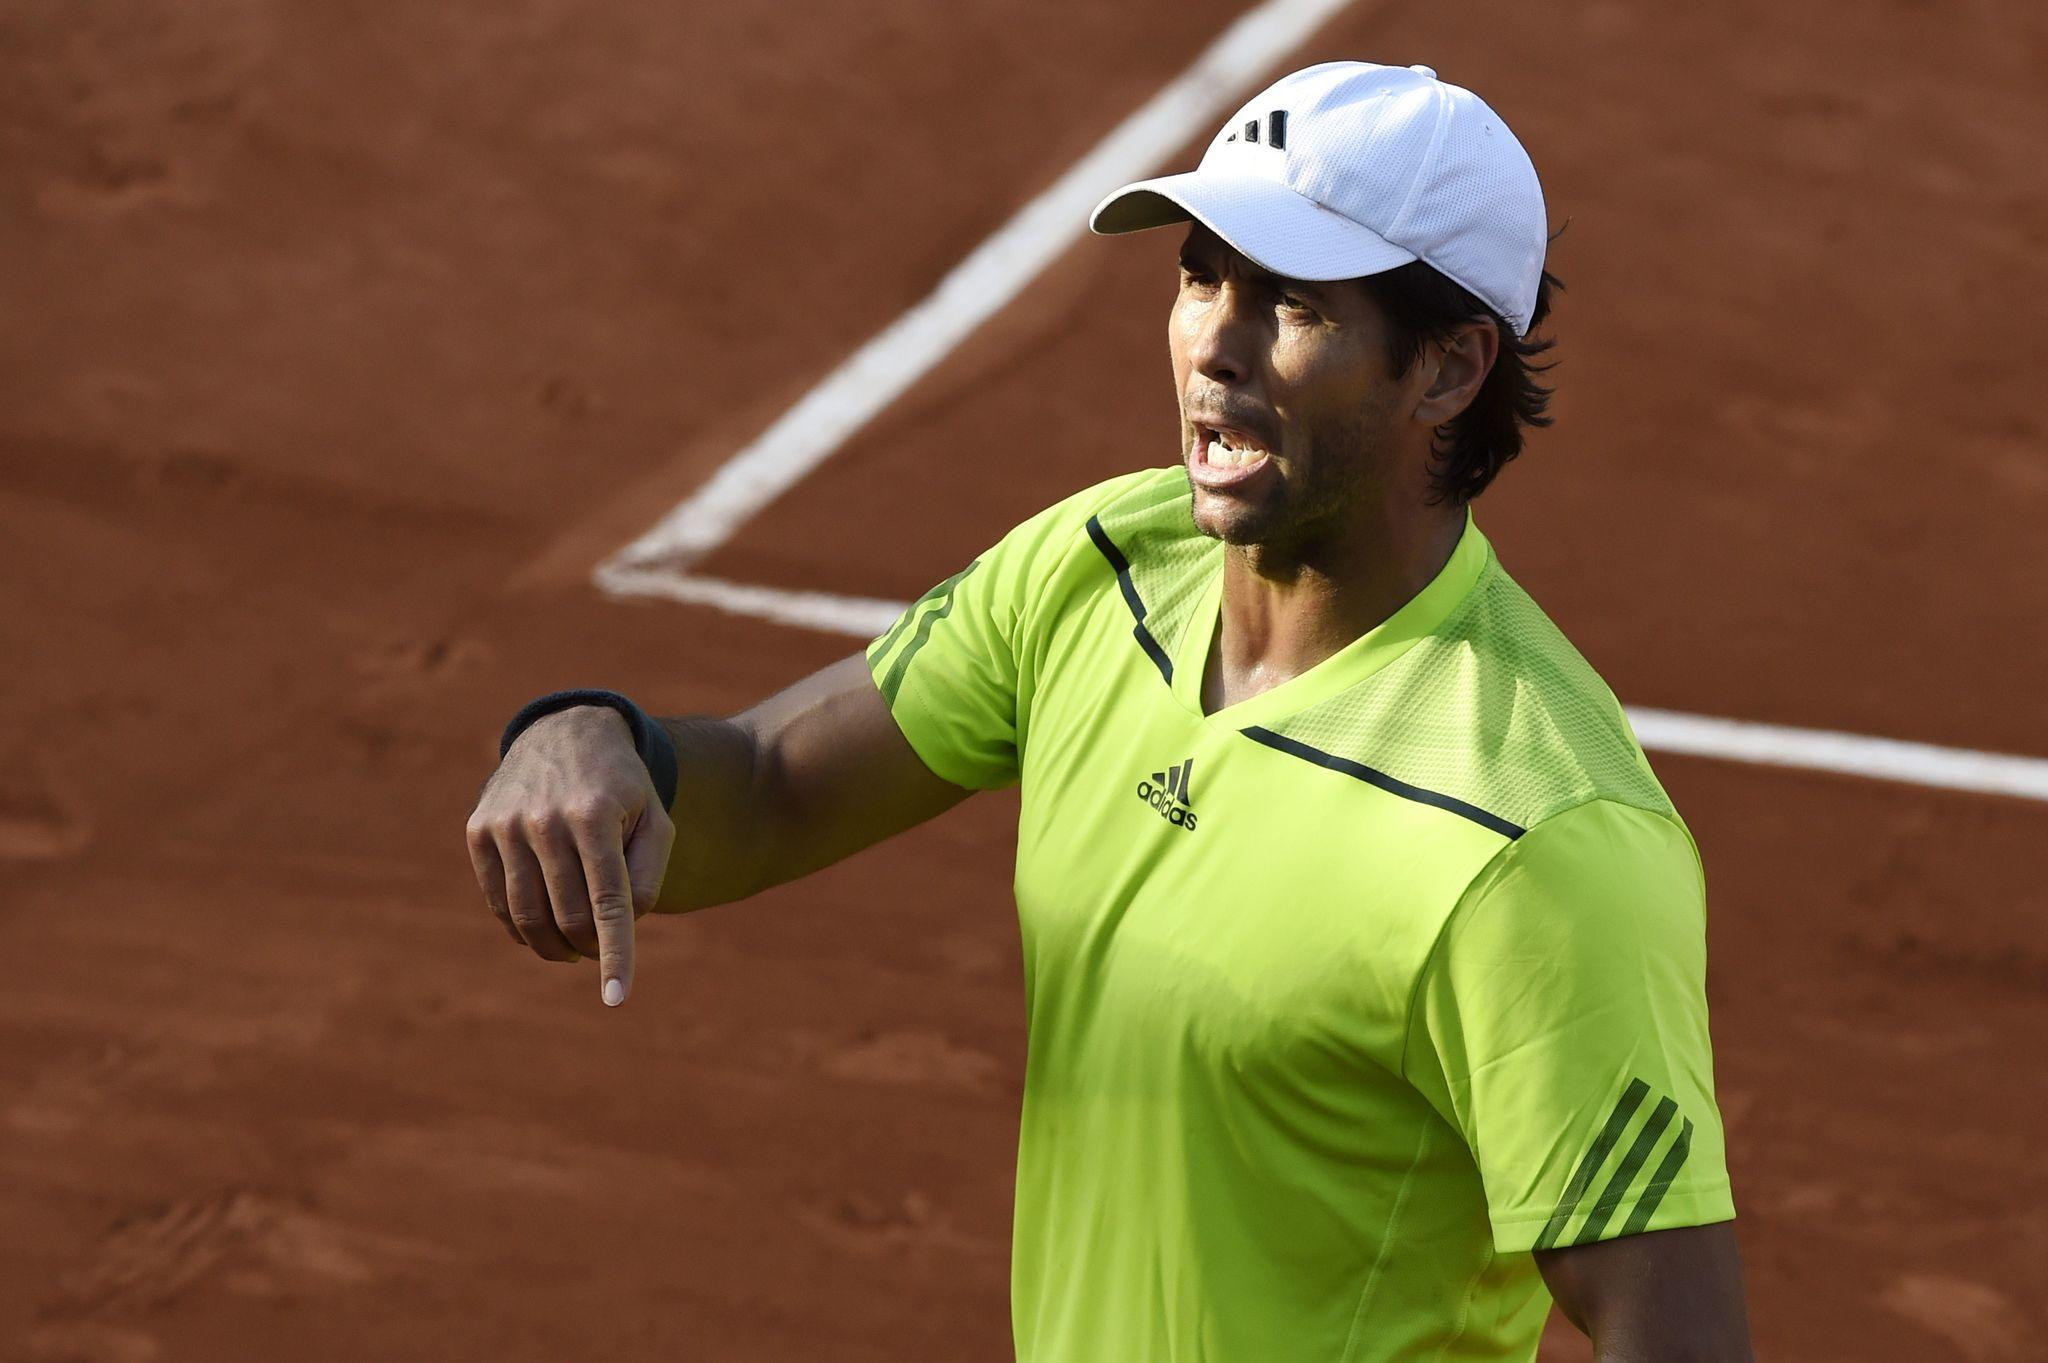 Spain's Fernando Verdasco reacts after a point during his French tennis Open round of sixteen match against Great Britain's Andy Murray at the Roland Garros stadium in Paris on June 2, 2014.